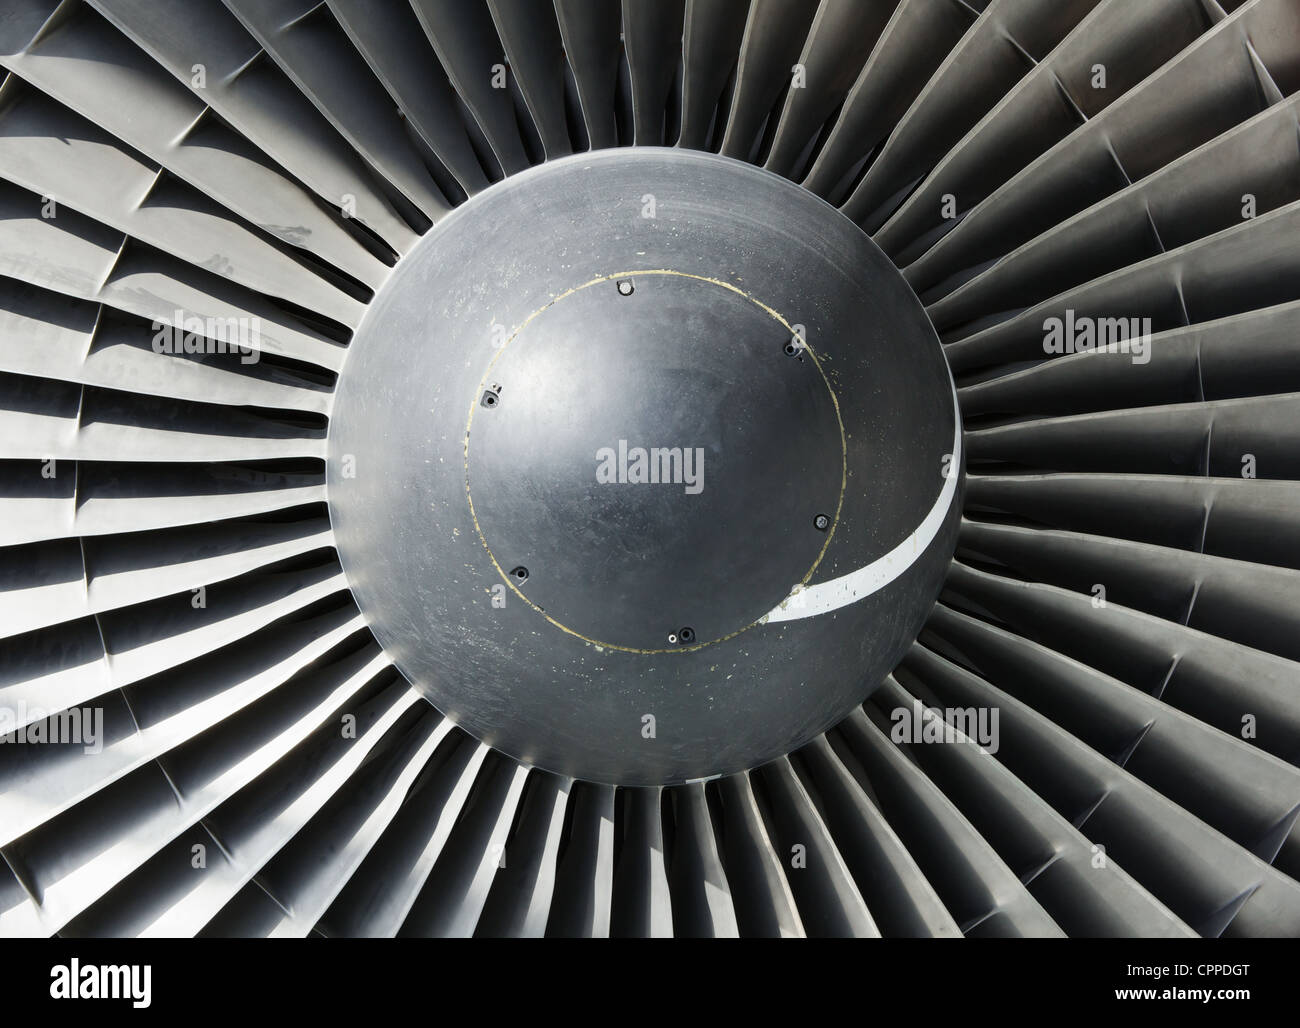 Single spiral on a large jet engine nose cone inlet - Stock Image